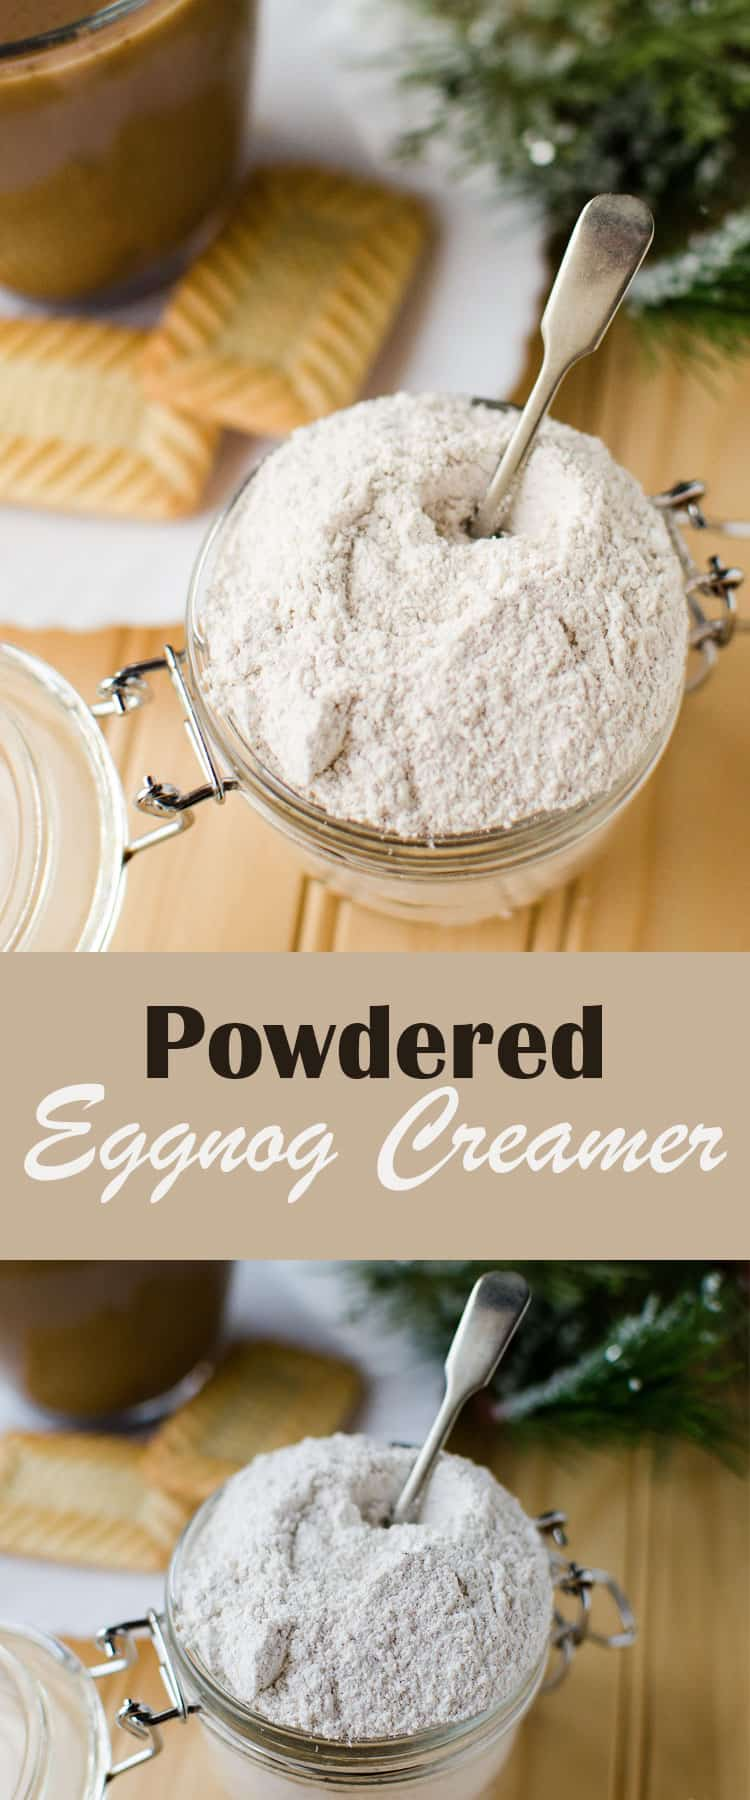 Powdered Eggnog Creamer